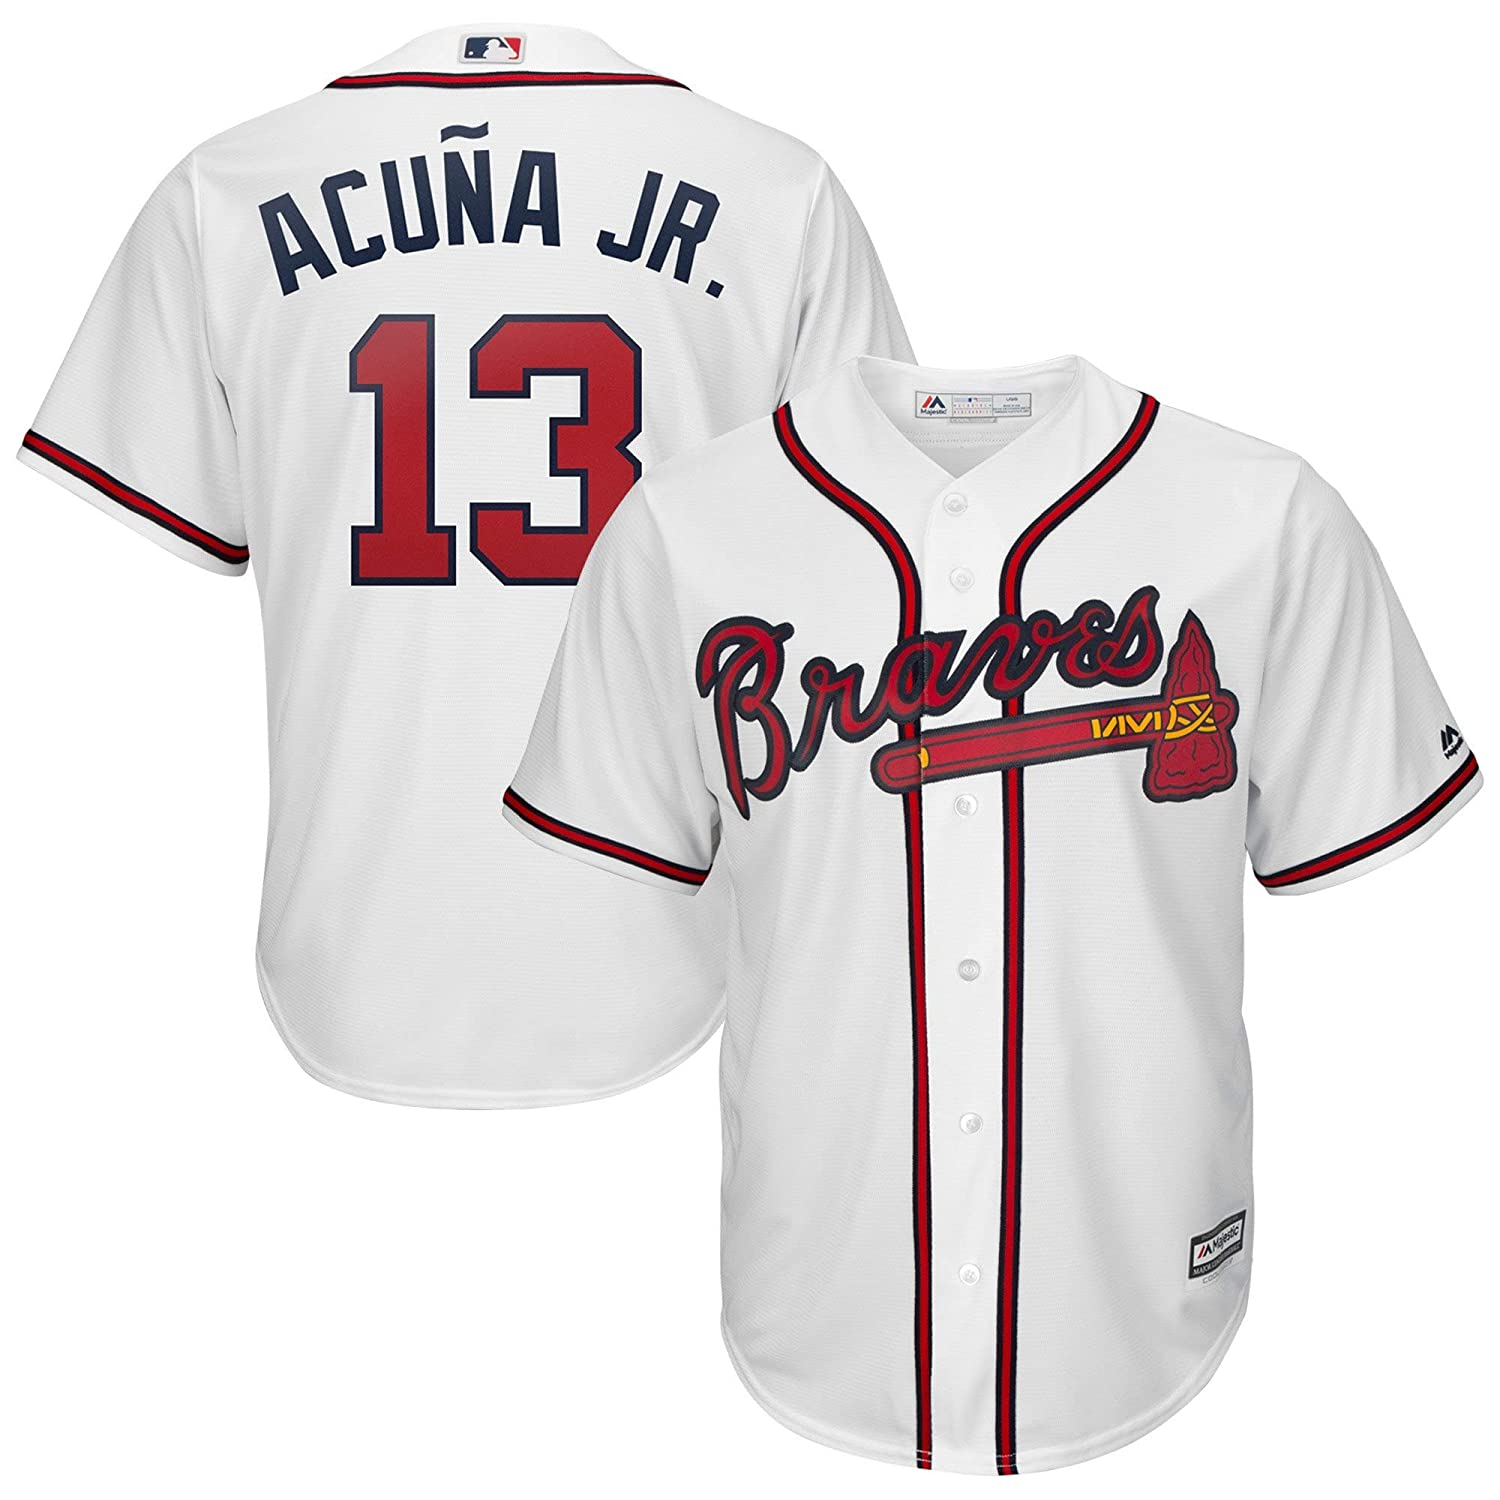 competitive price 8c523 b38ff Outerstuff Youth Kids Atlanta Braves 13 Ronald Acuna Jr 2019 Baseball Jersey